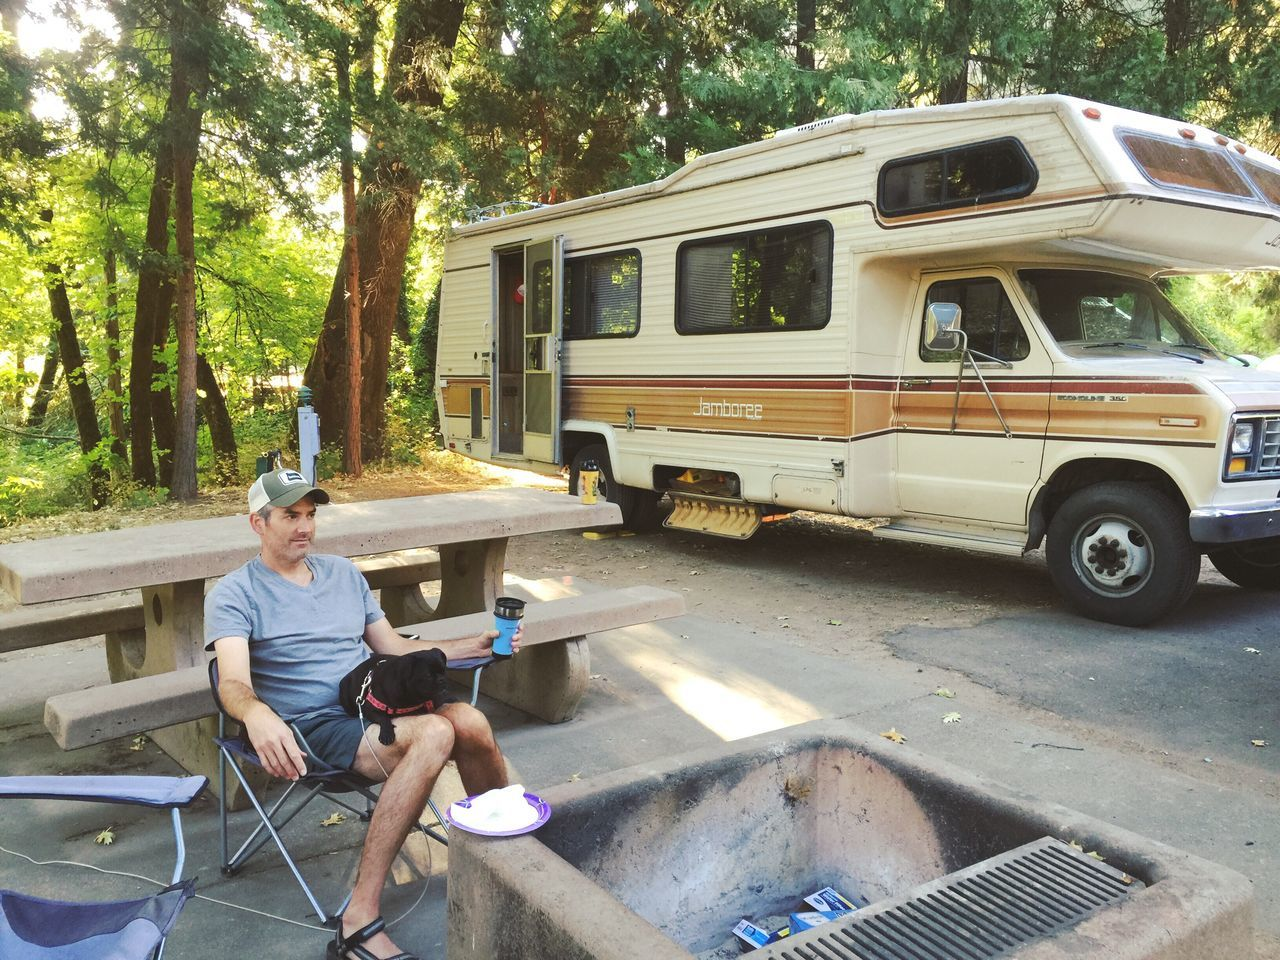 Camp Camping Rv Motorhome Vacation Relaxing Summer Peopleandplaces